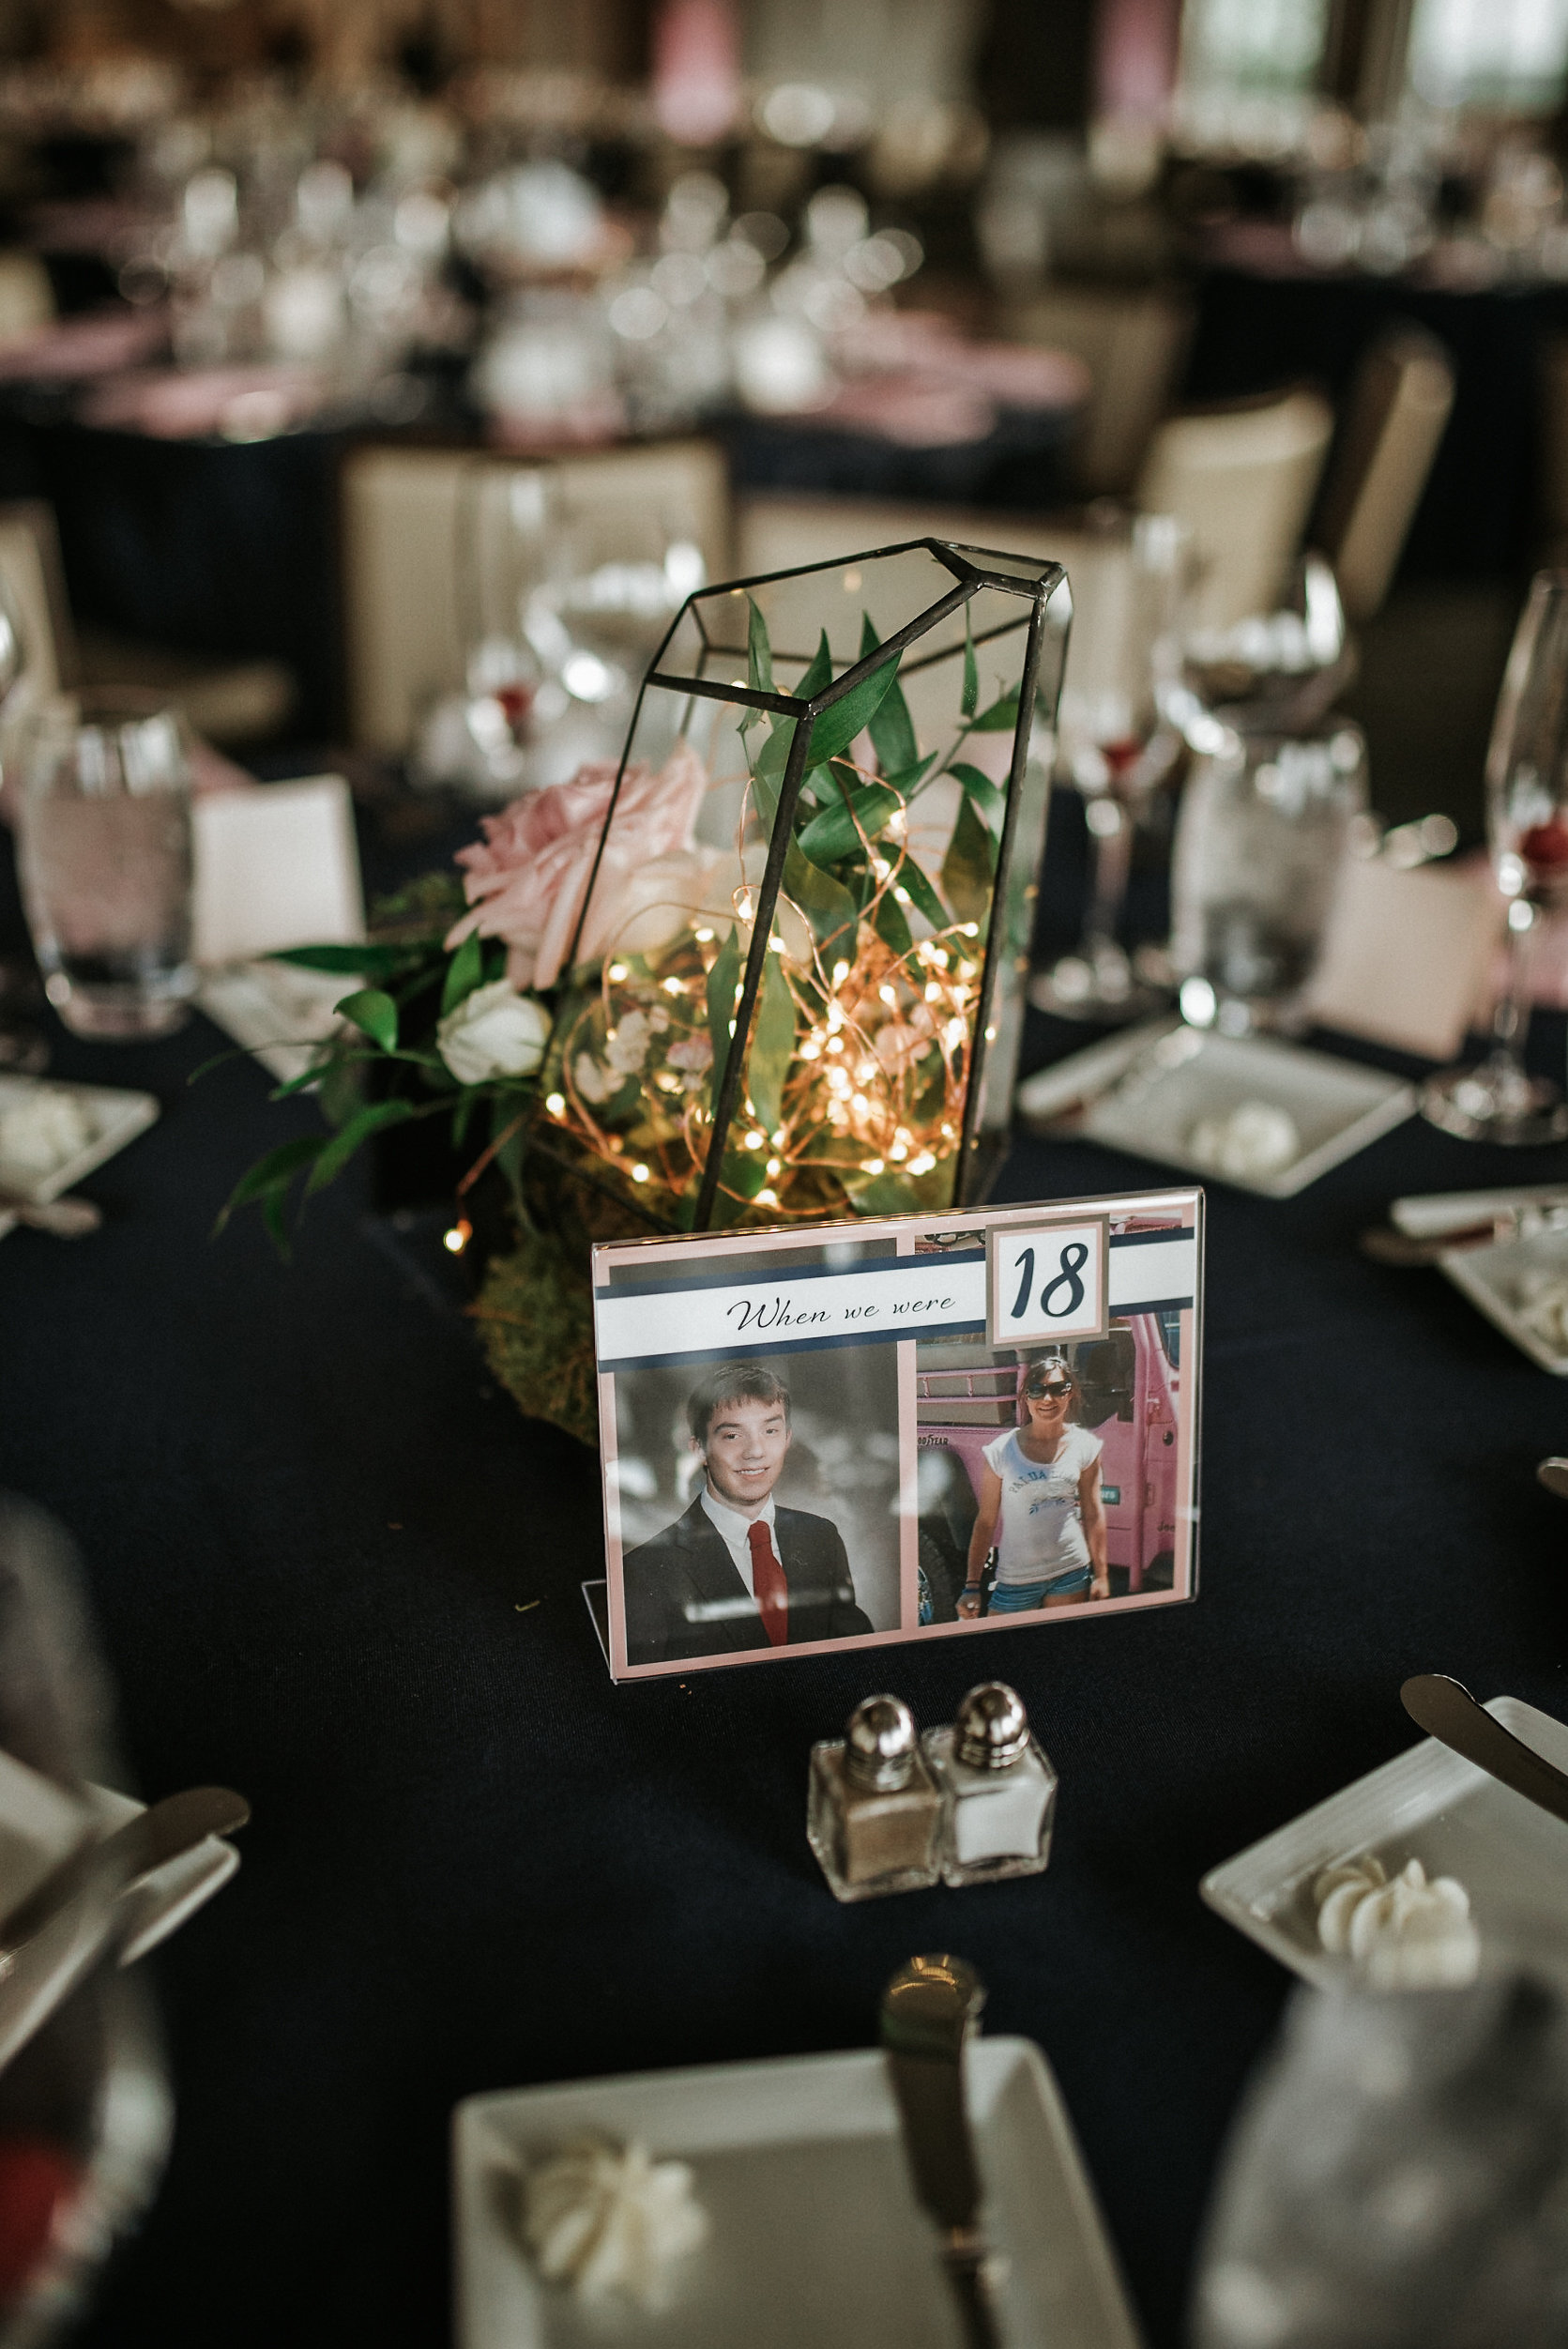 Lighted centerpiece with photos